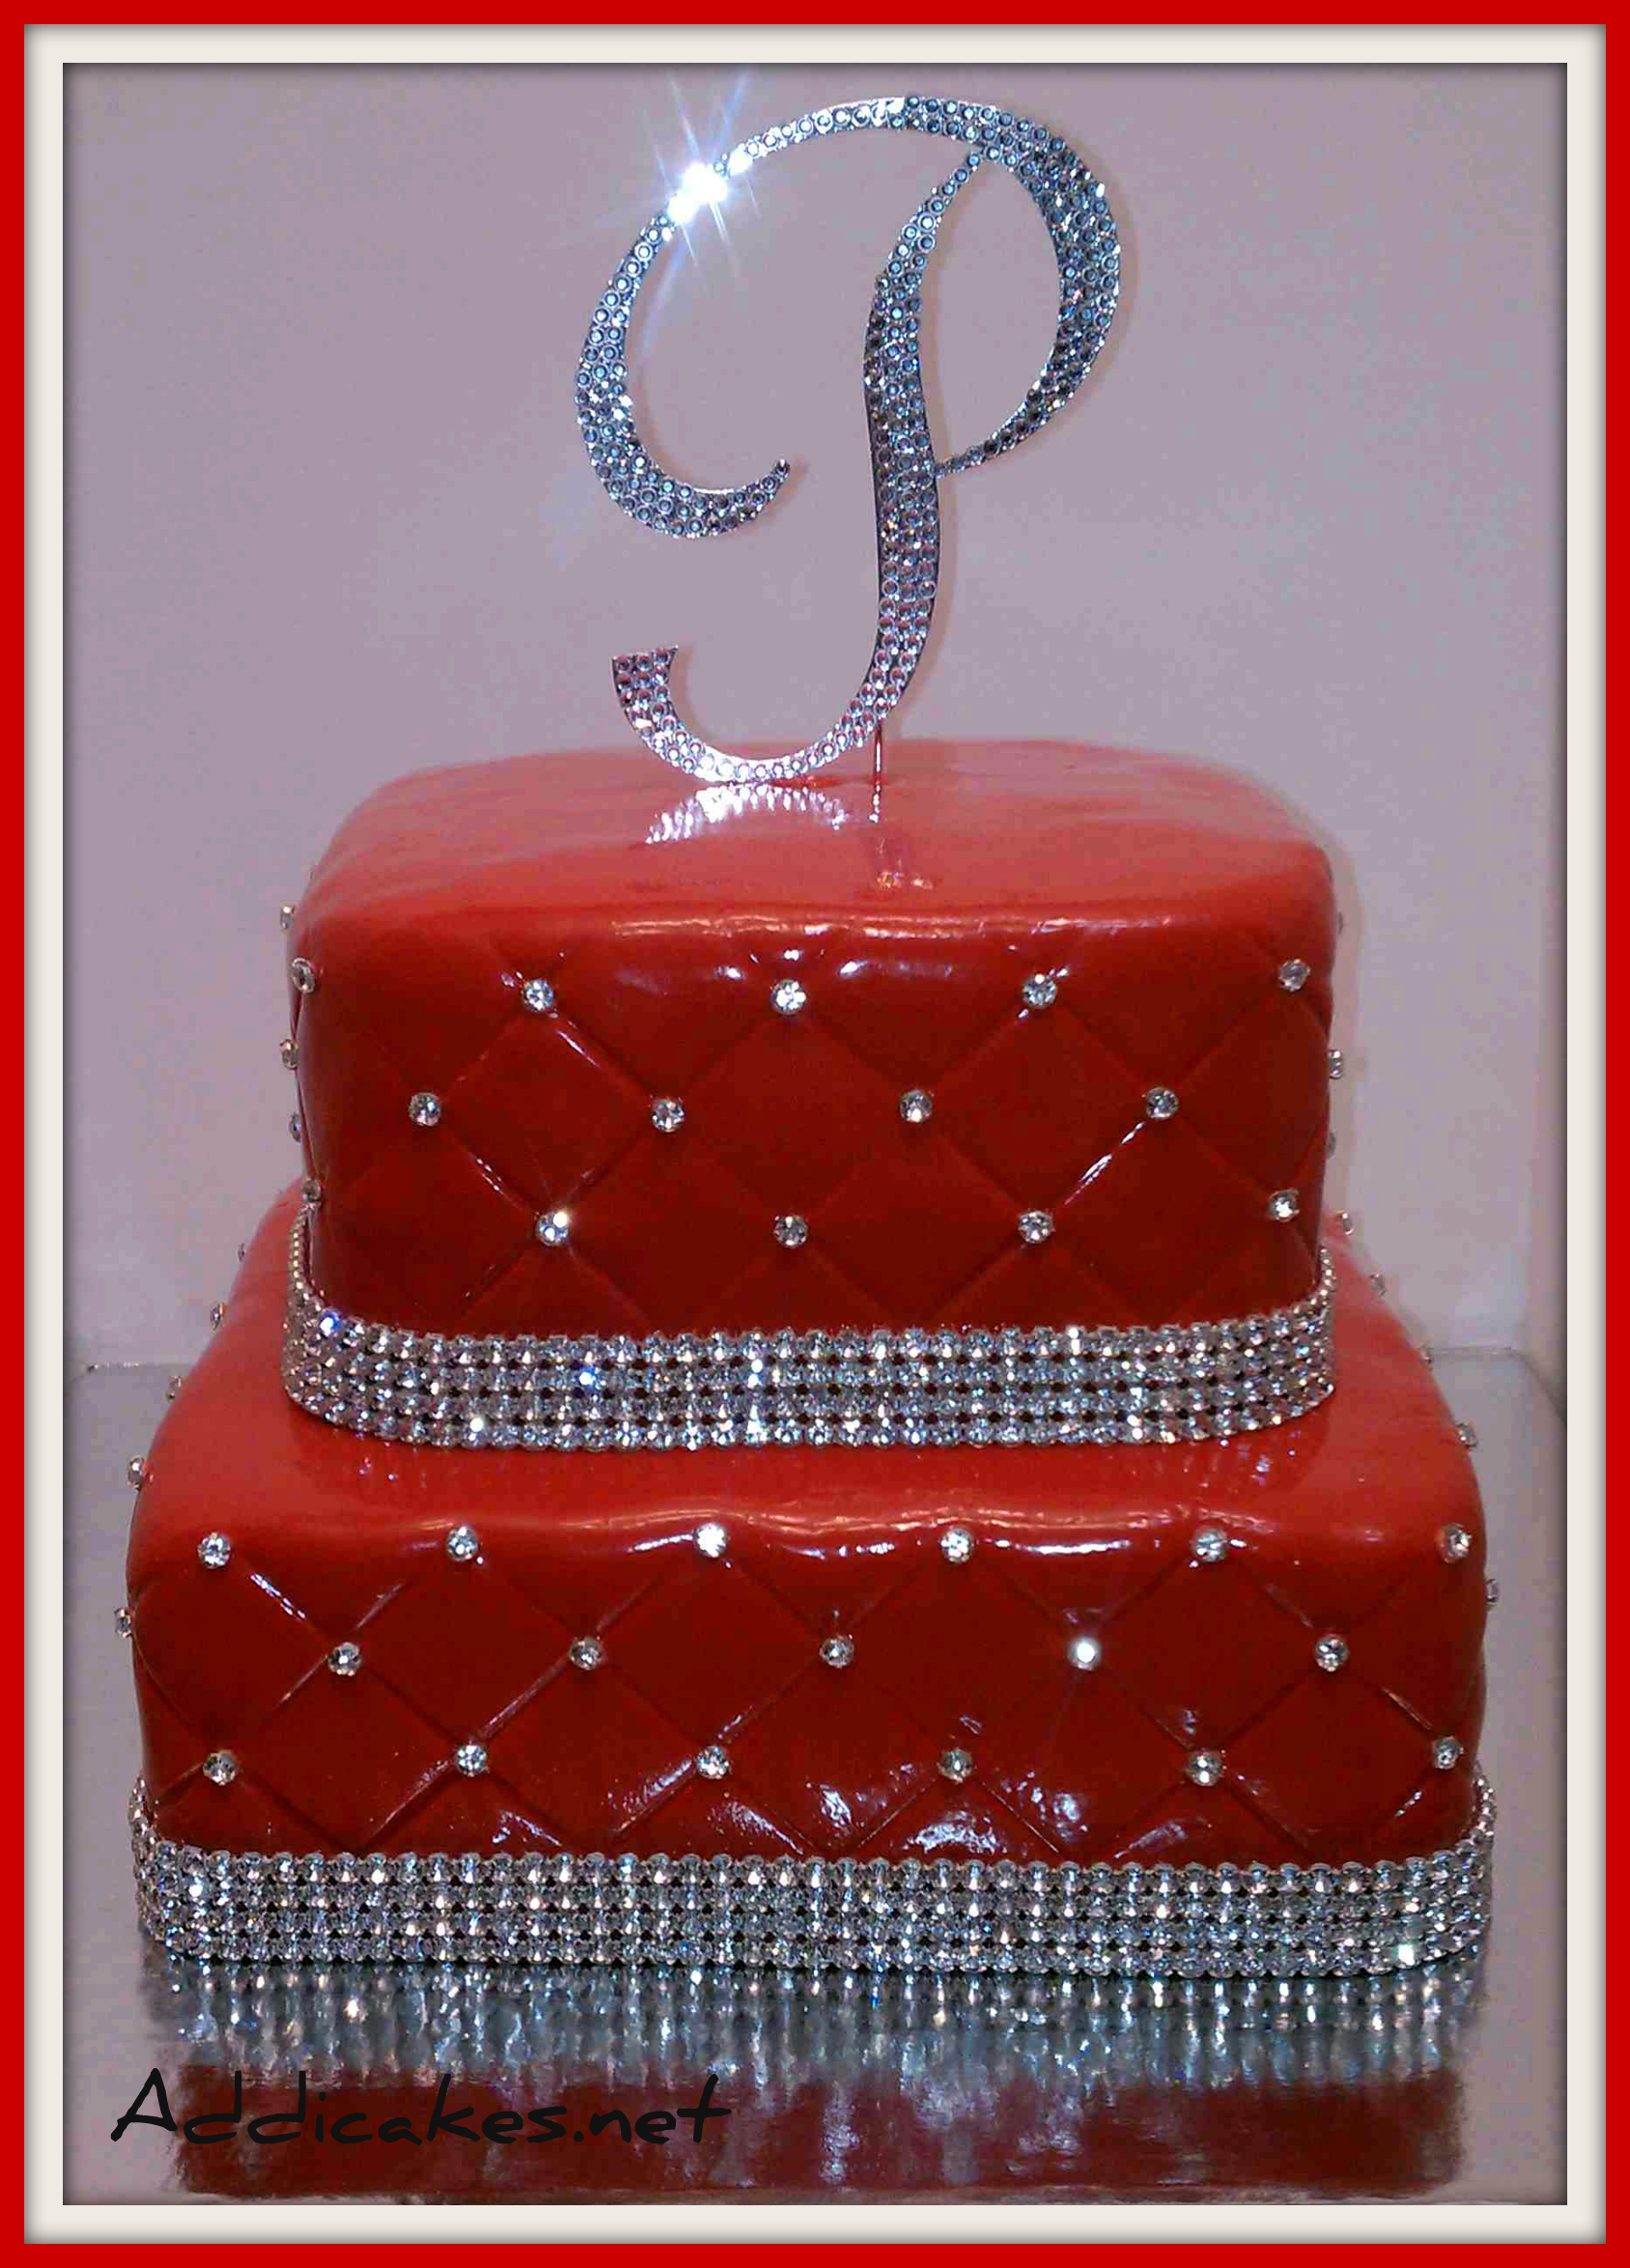 65th birthday sheet cake ; cfe465bf73b1f63250957f0addb9ee11